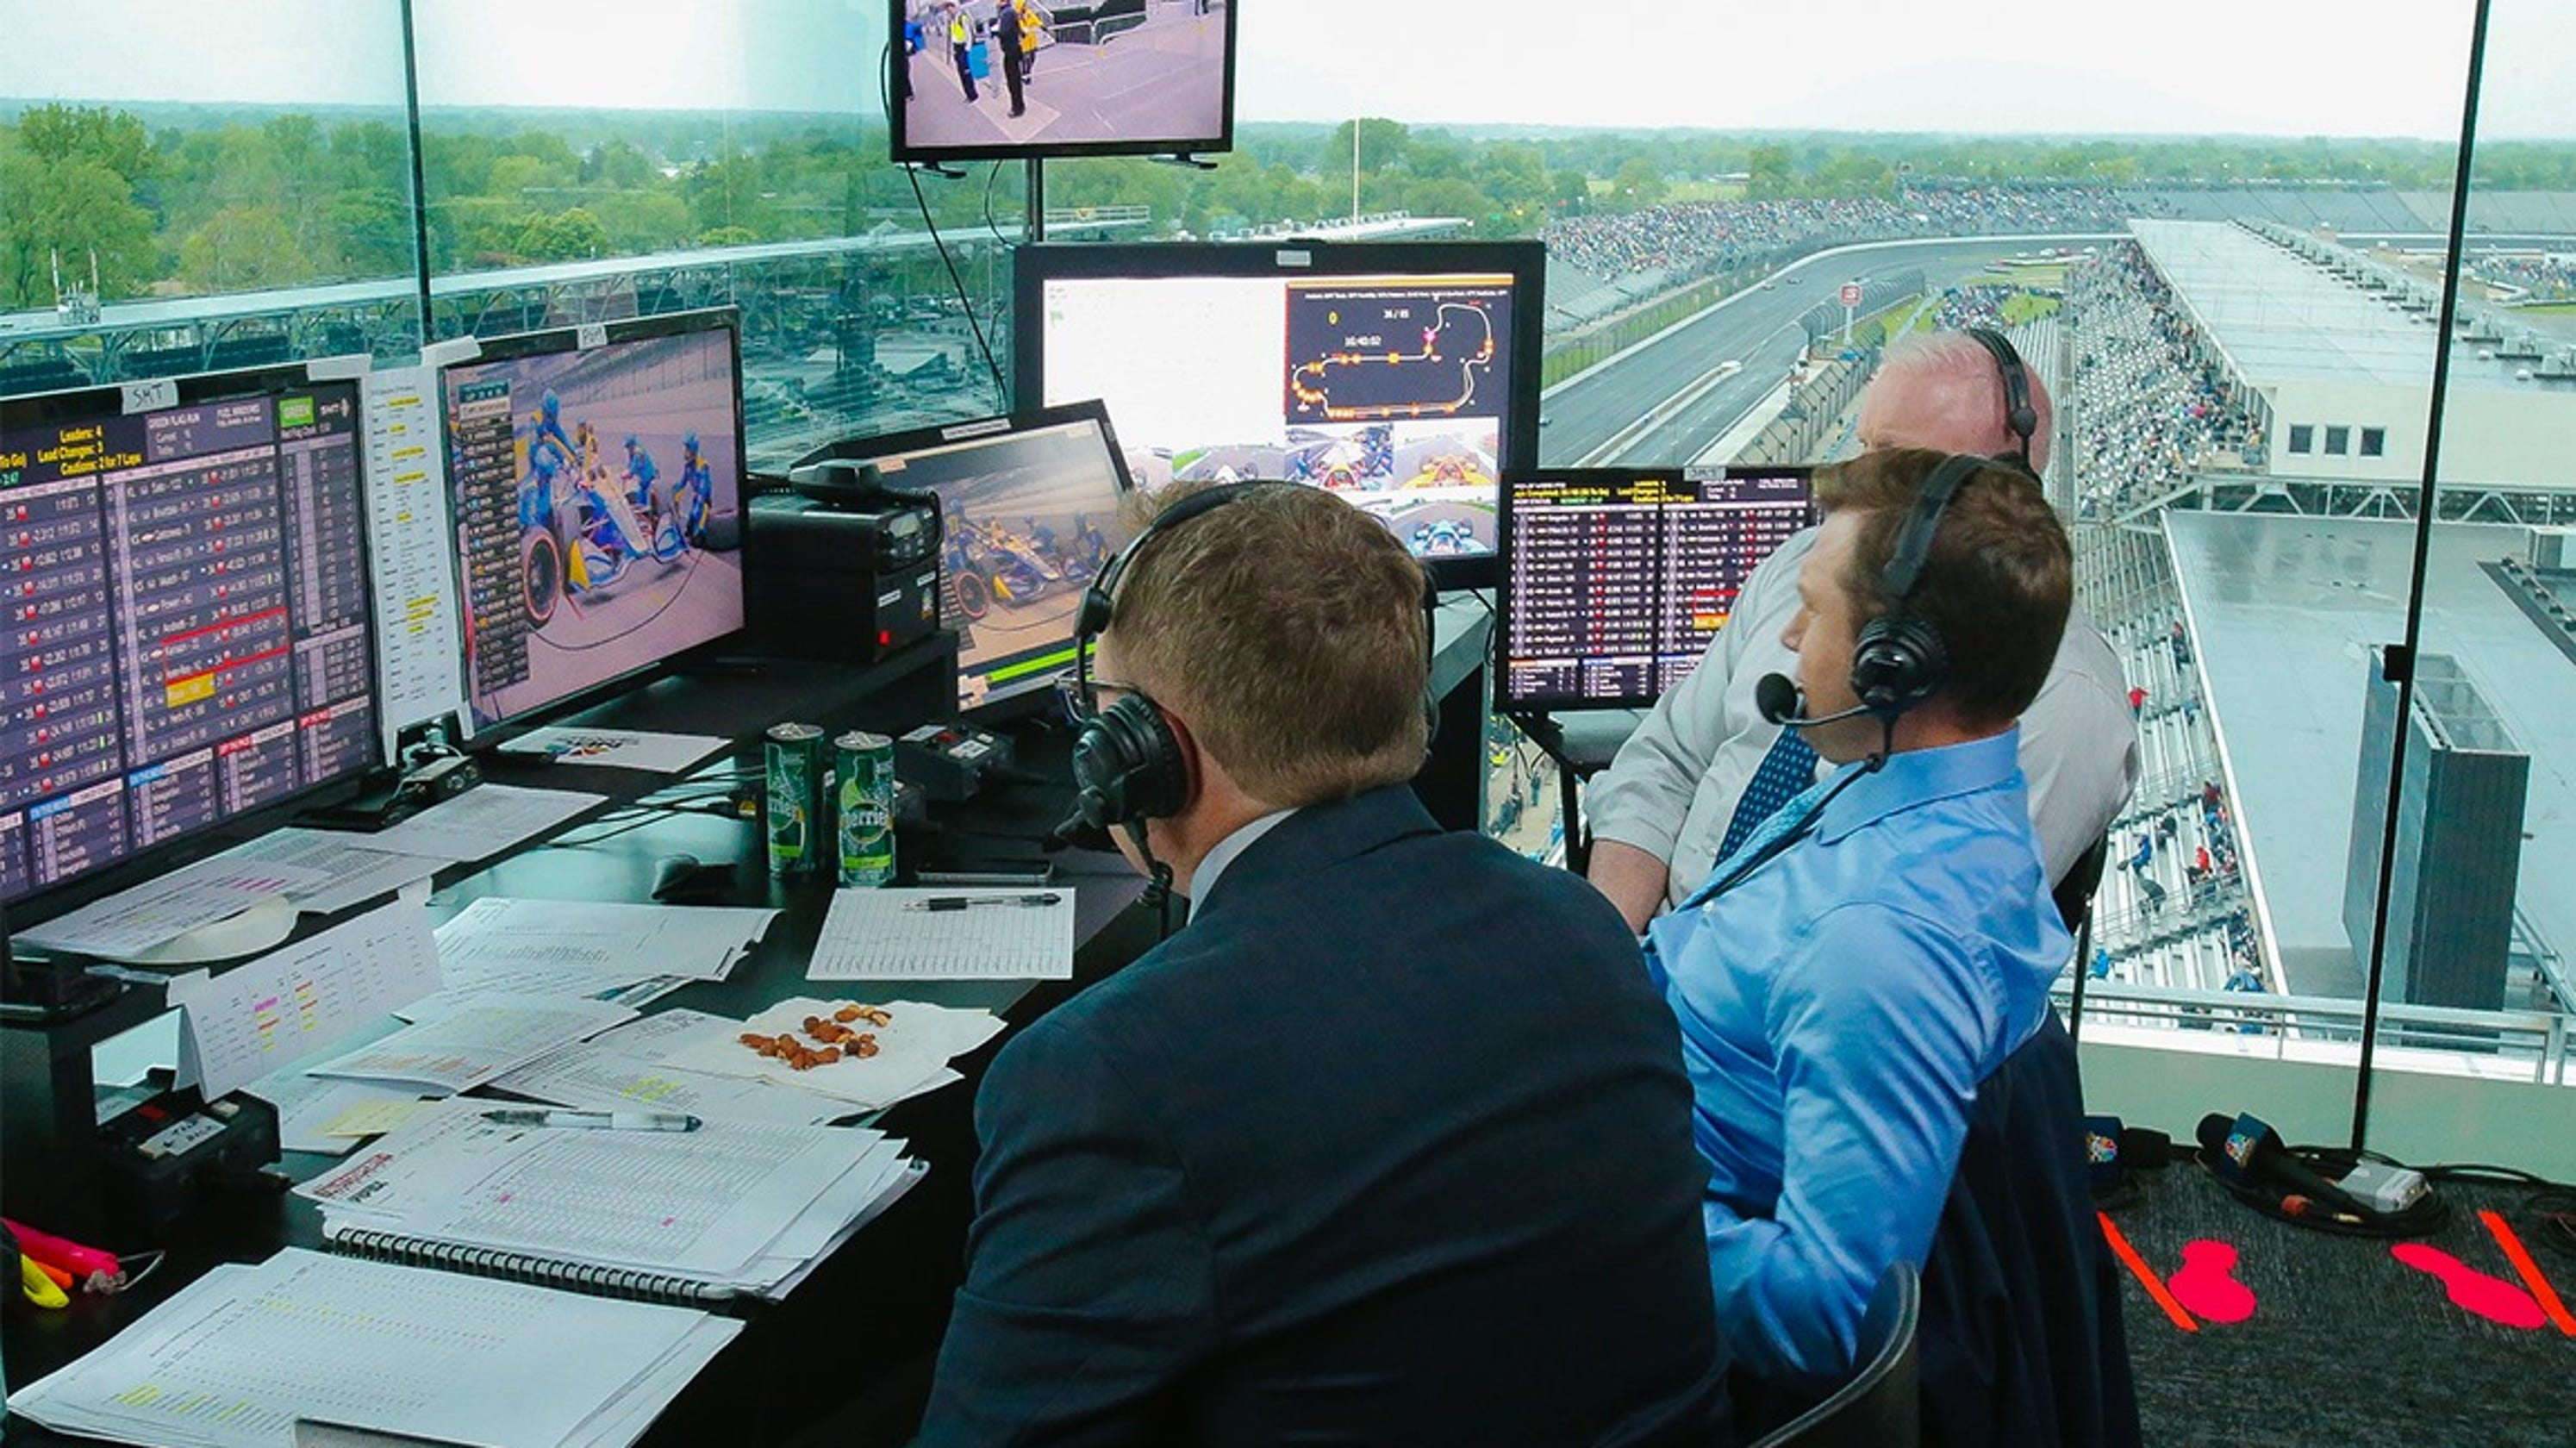 Indy 500: NBC to combine magic of TV with majesty of race to